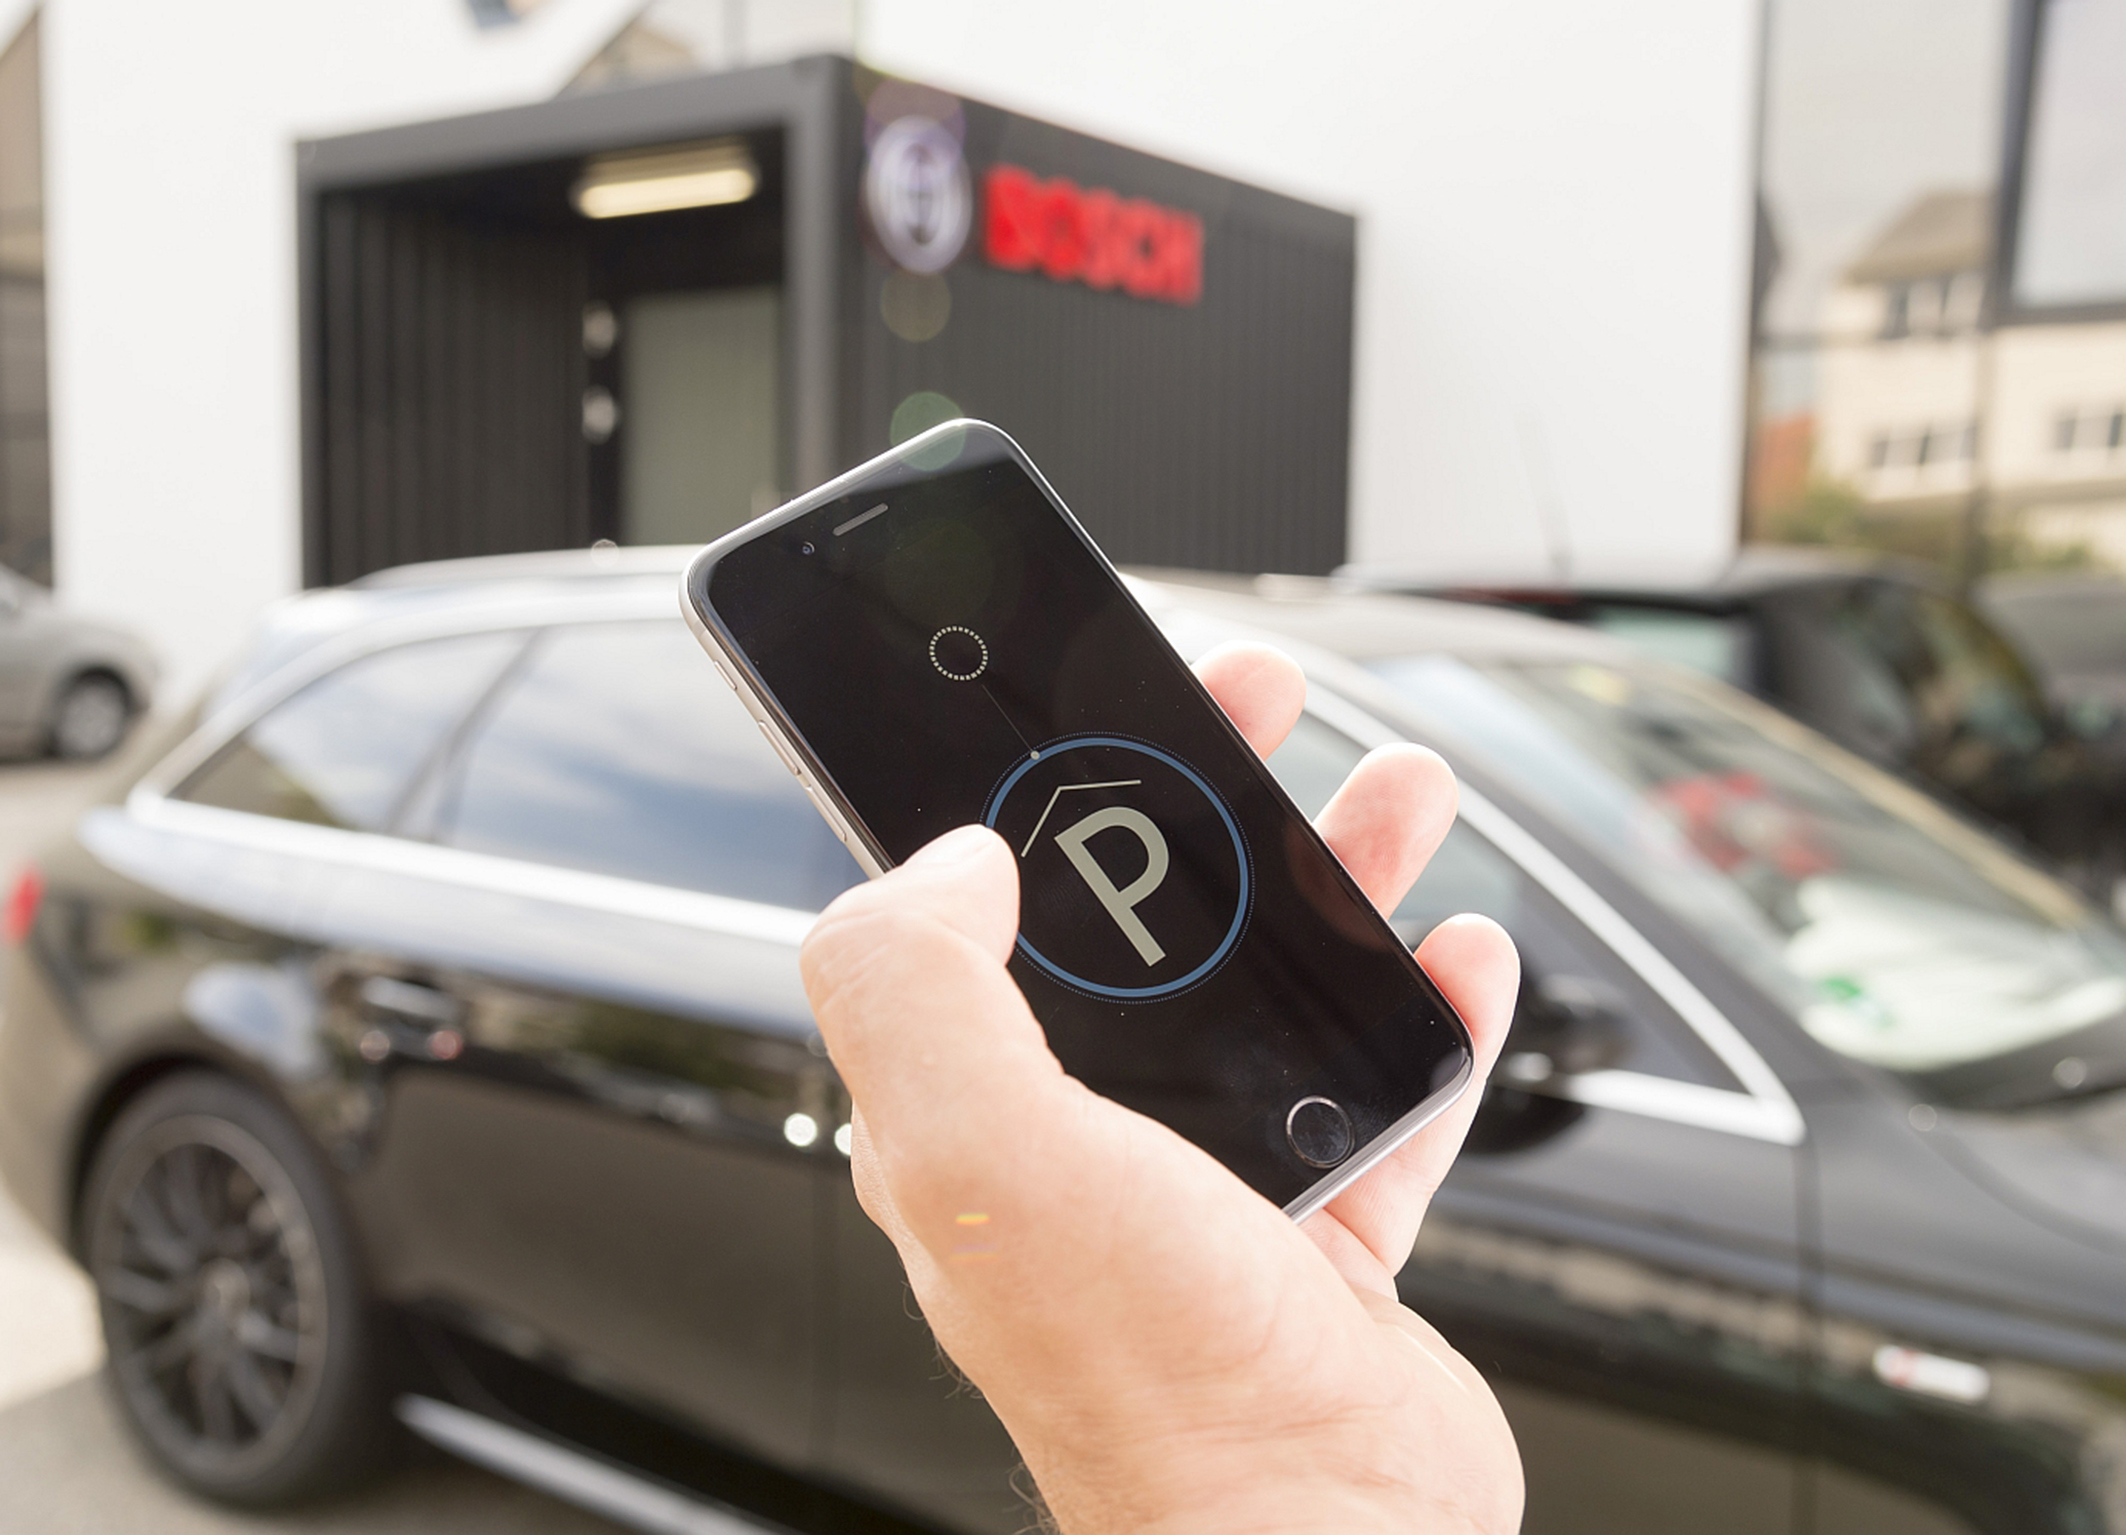 Connected and automated from Bosch – Taking the hassle out of parking